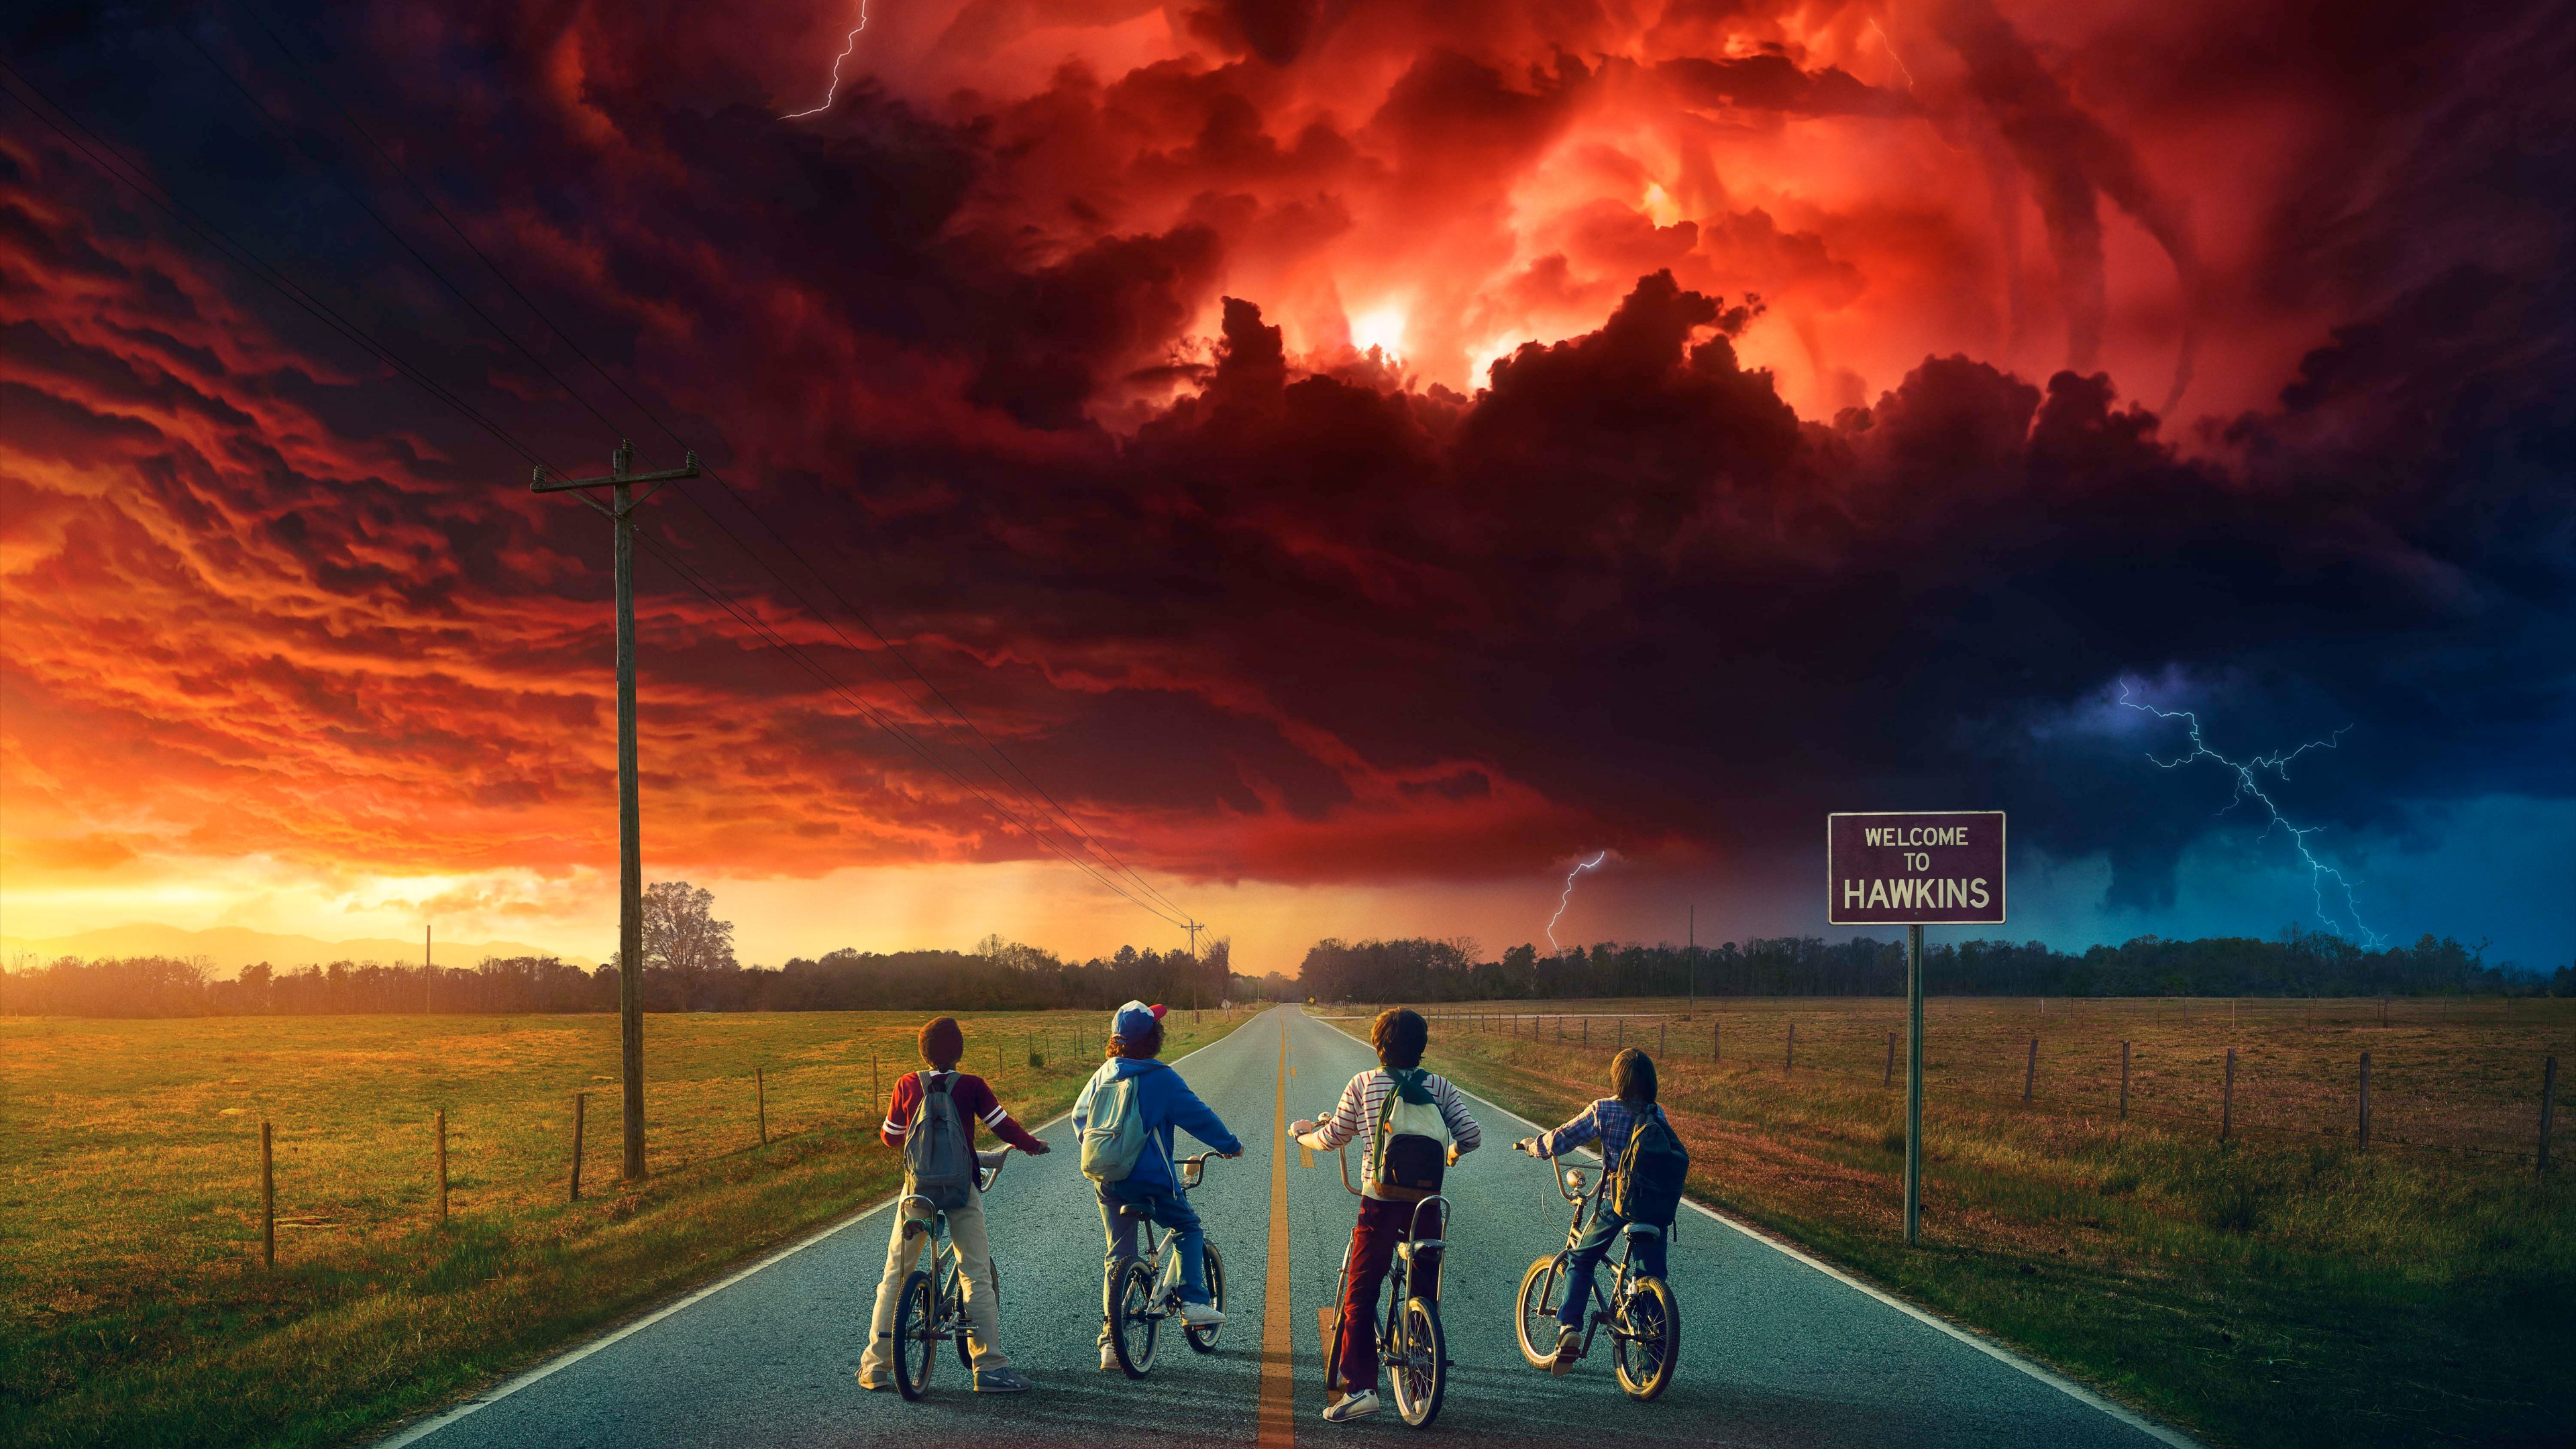 Stranger Things Welcome To Hawkins Wallpaper 4k Ultra Hd Id3328